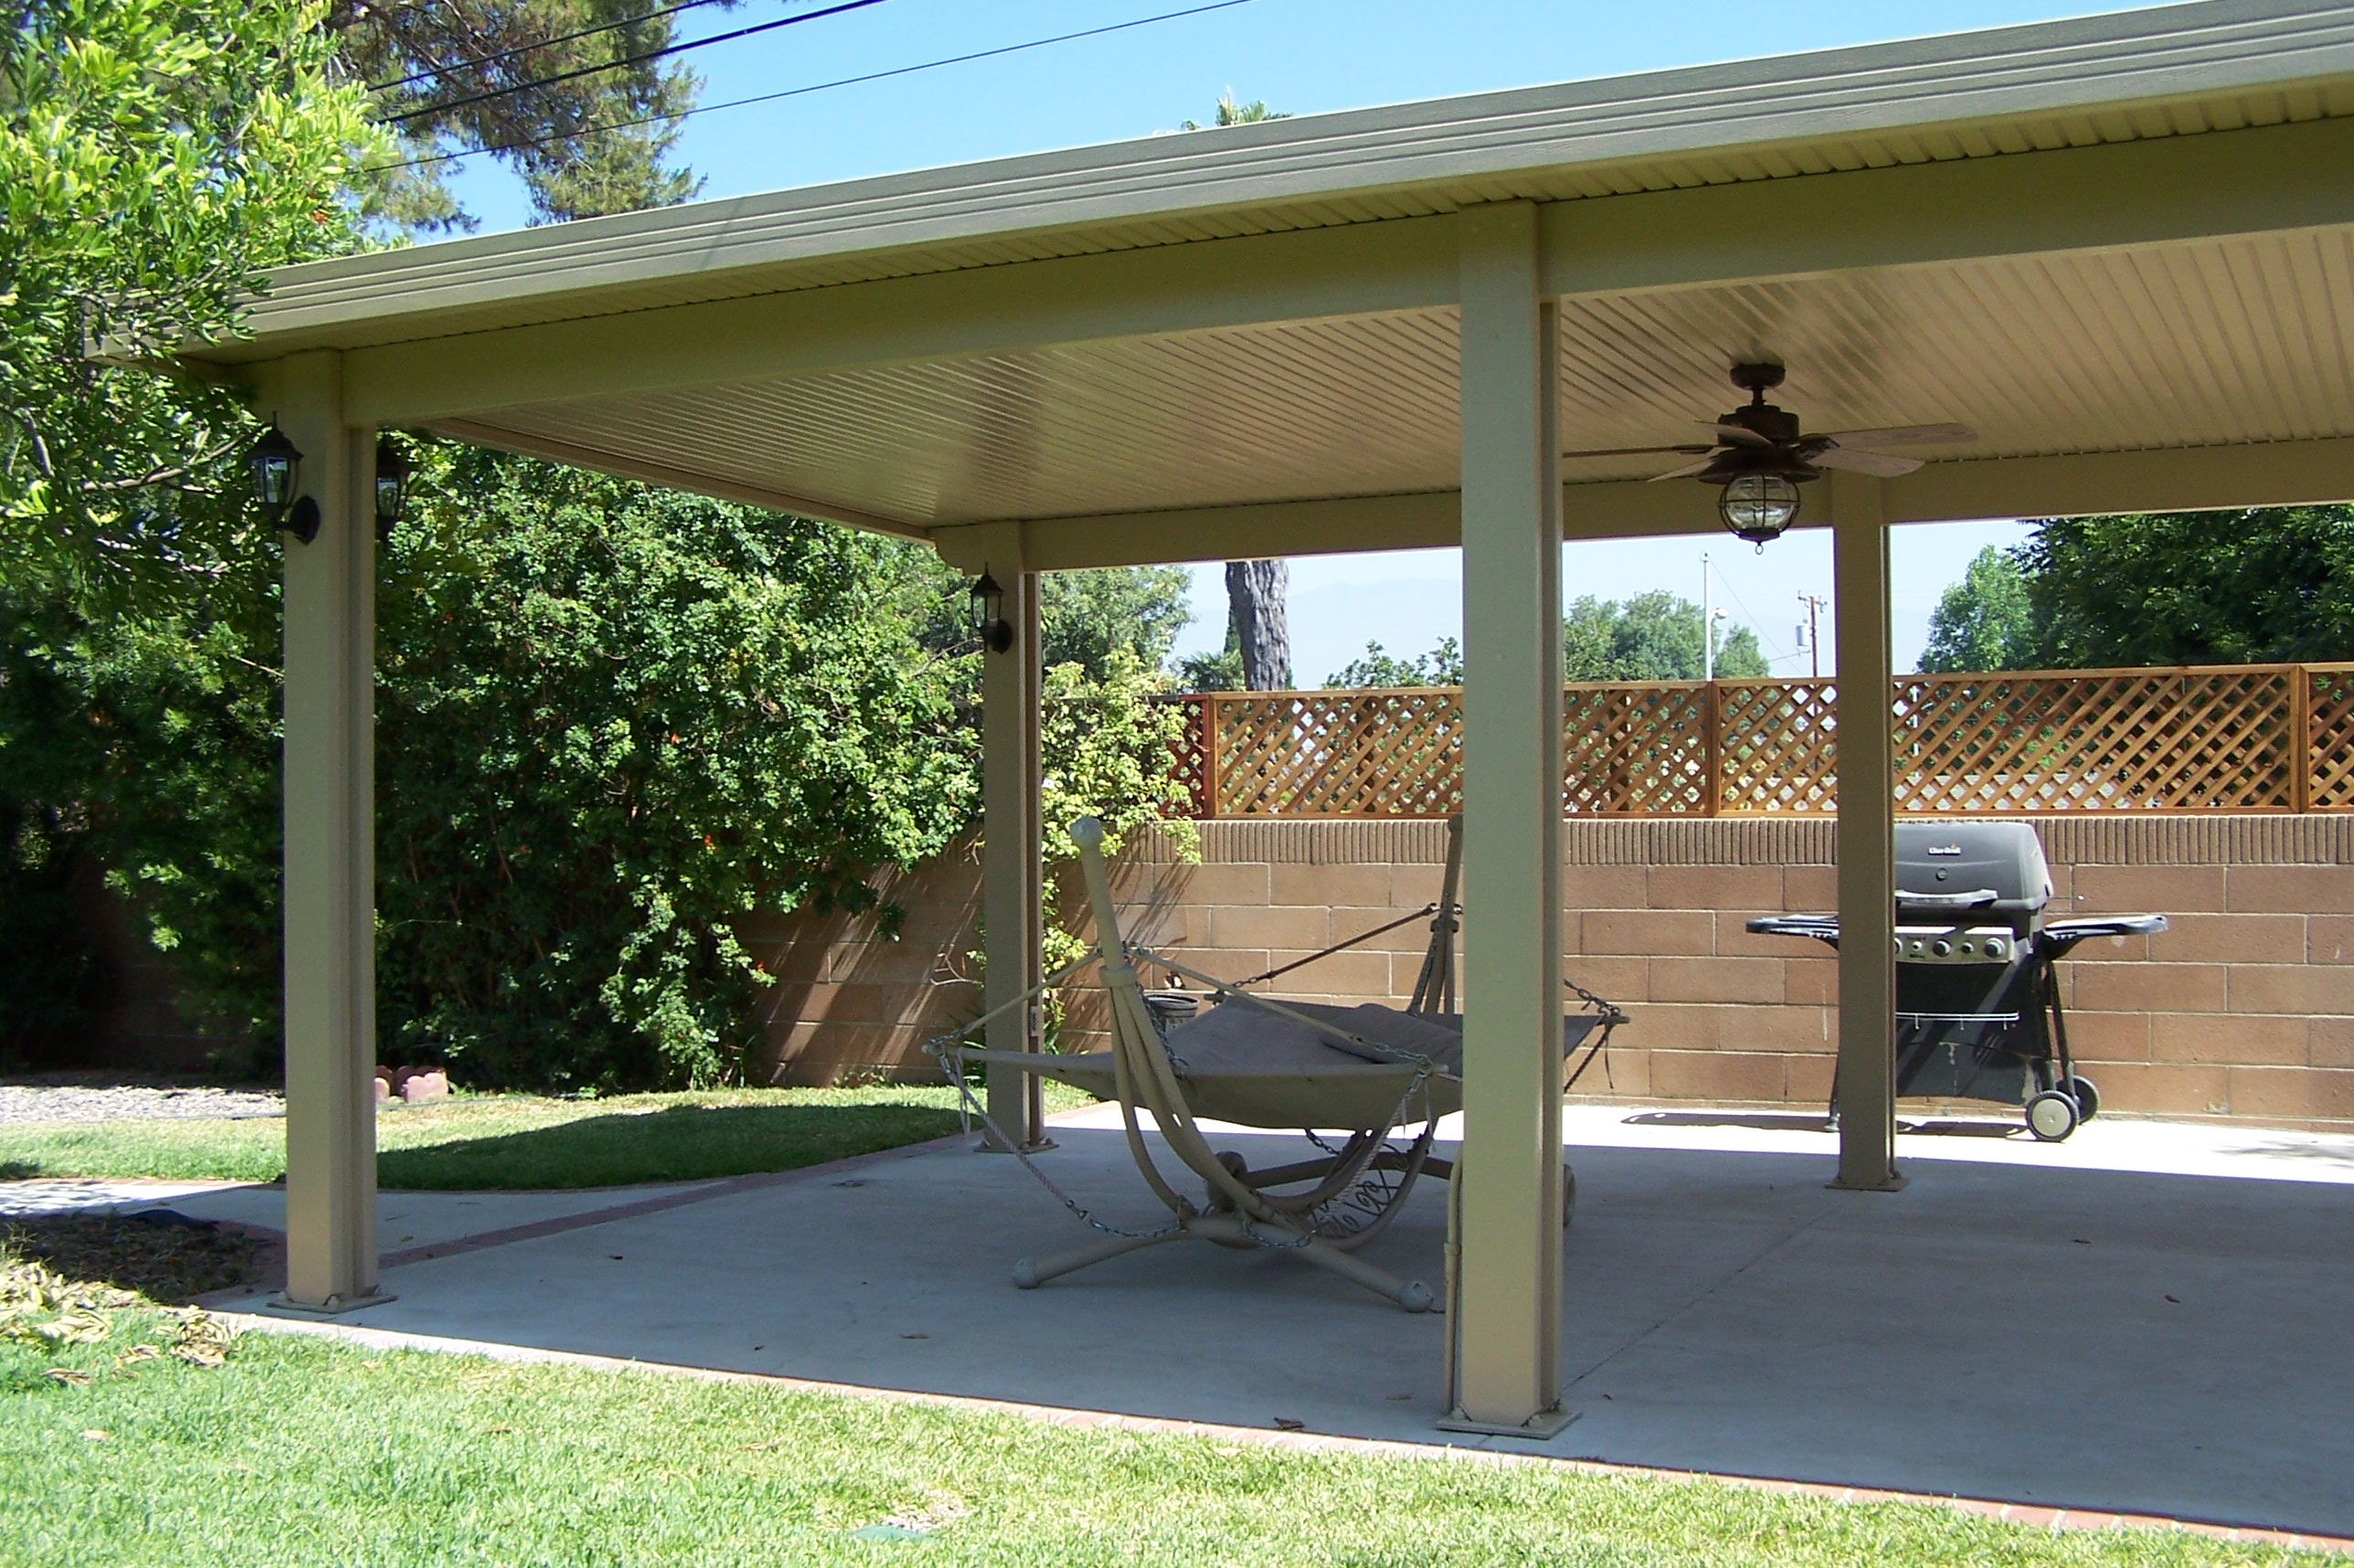 Simple Patio Covered Aluminum Insulated Cover Vs Non Orange throughout measurements 2576 X 1716